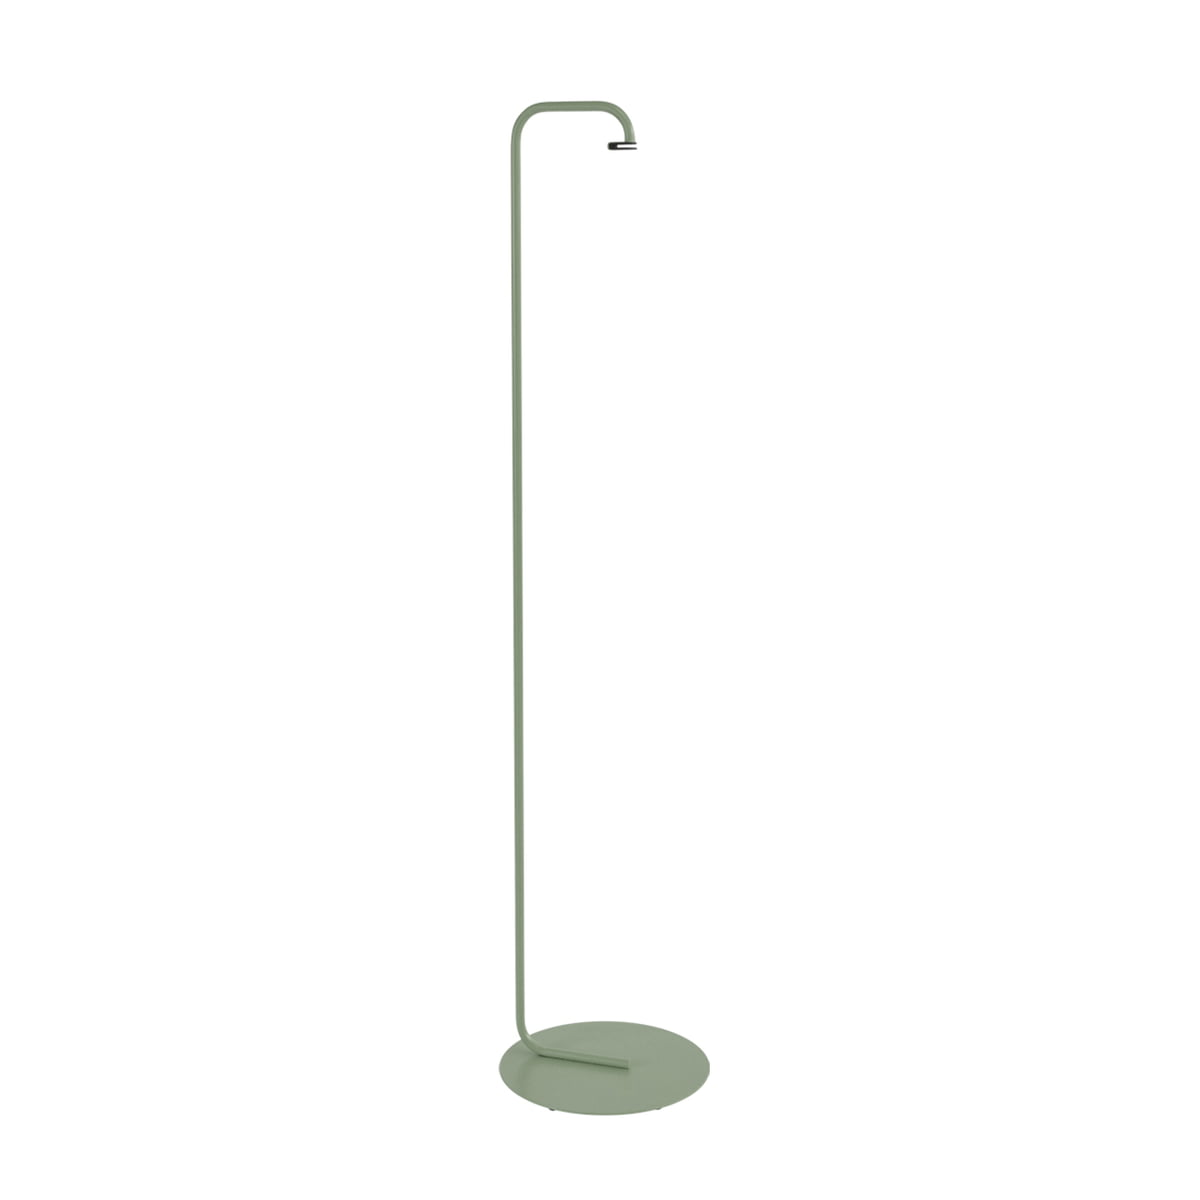 Balad Upright Stand By Fermob